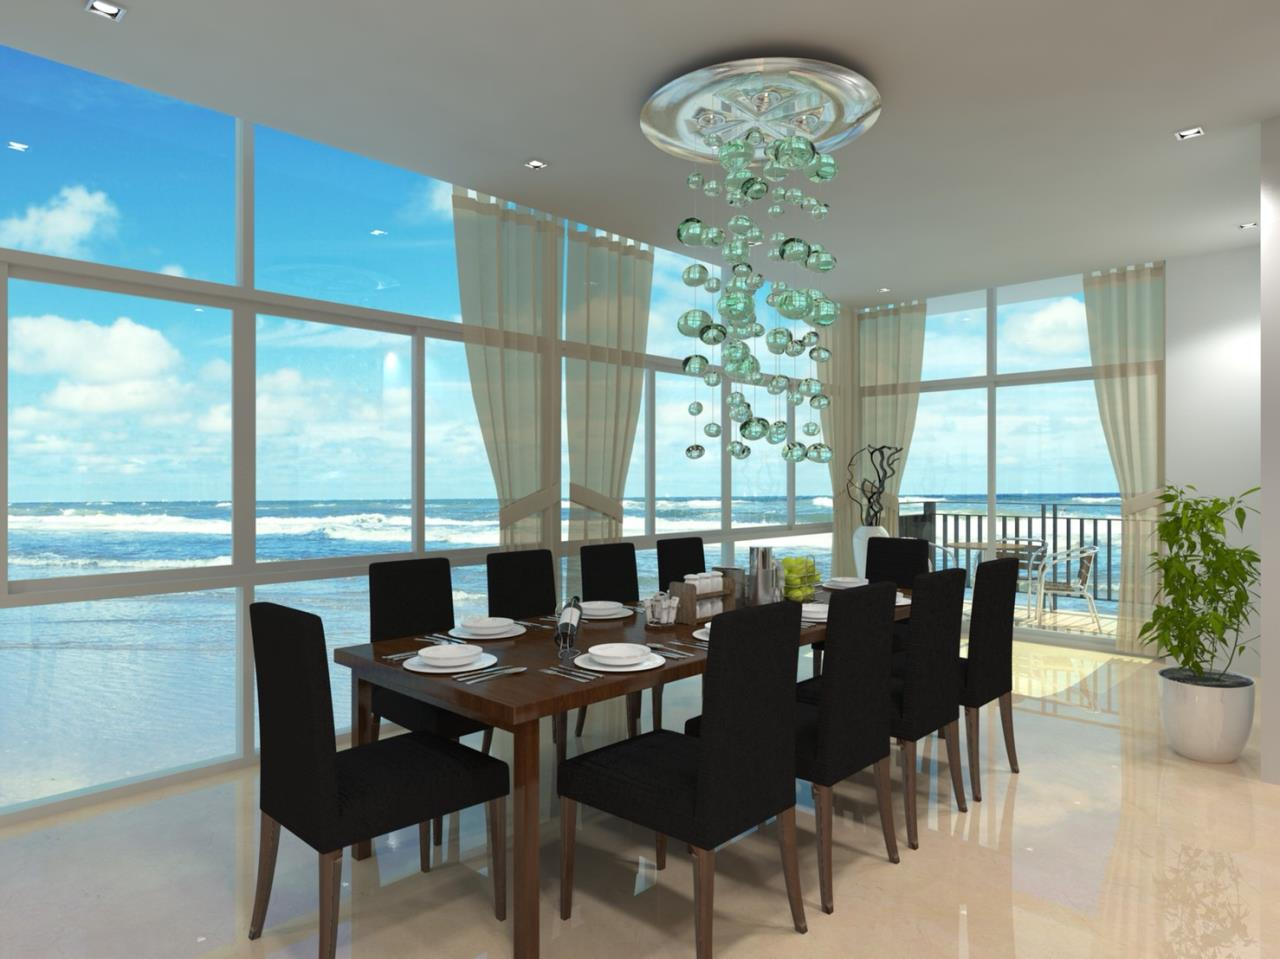 Signature Realty ( Thailand ) Co Ltd Agency's Furnished 2bedroom 40 sq.m condo floor 11-20 at The Grand Jomtein Beach Pattaya 25